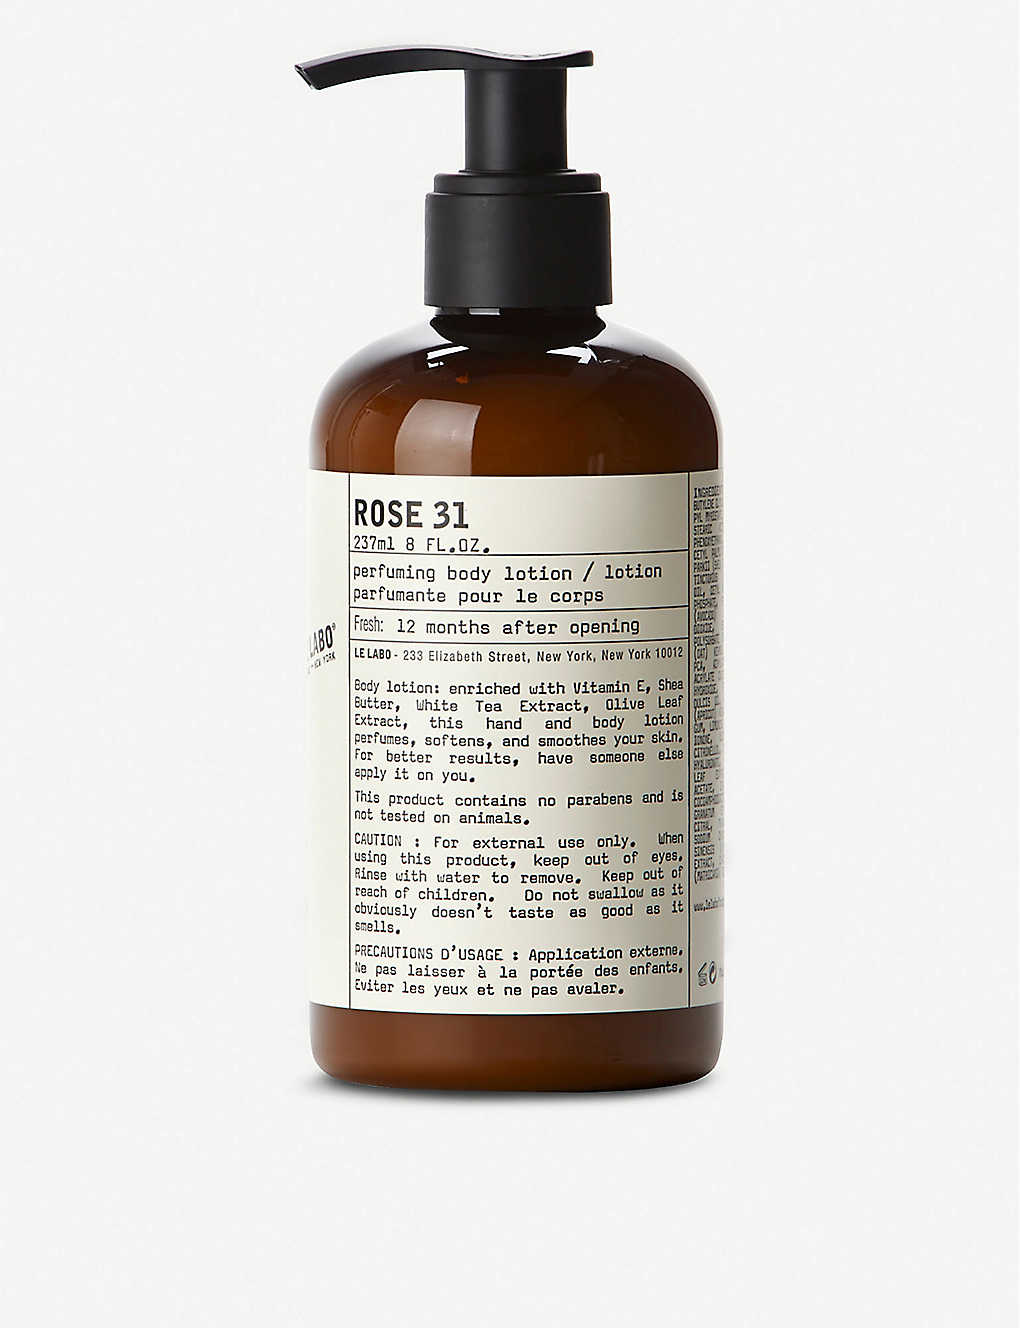 LE LABO: Rose 31 Body Lotion 237ml